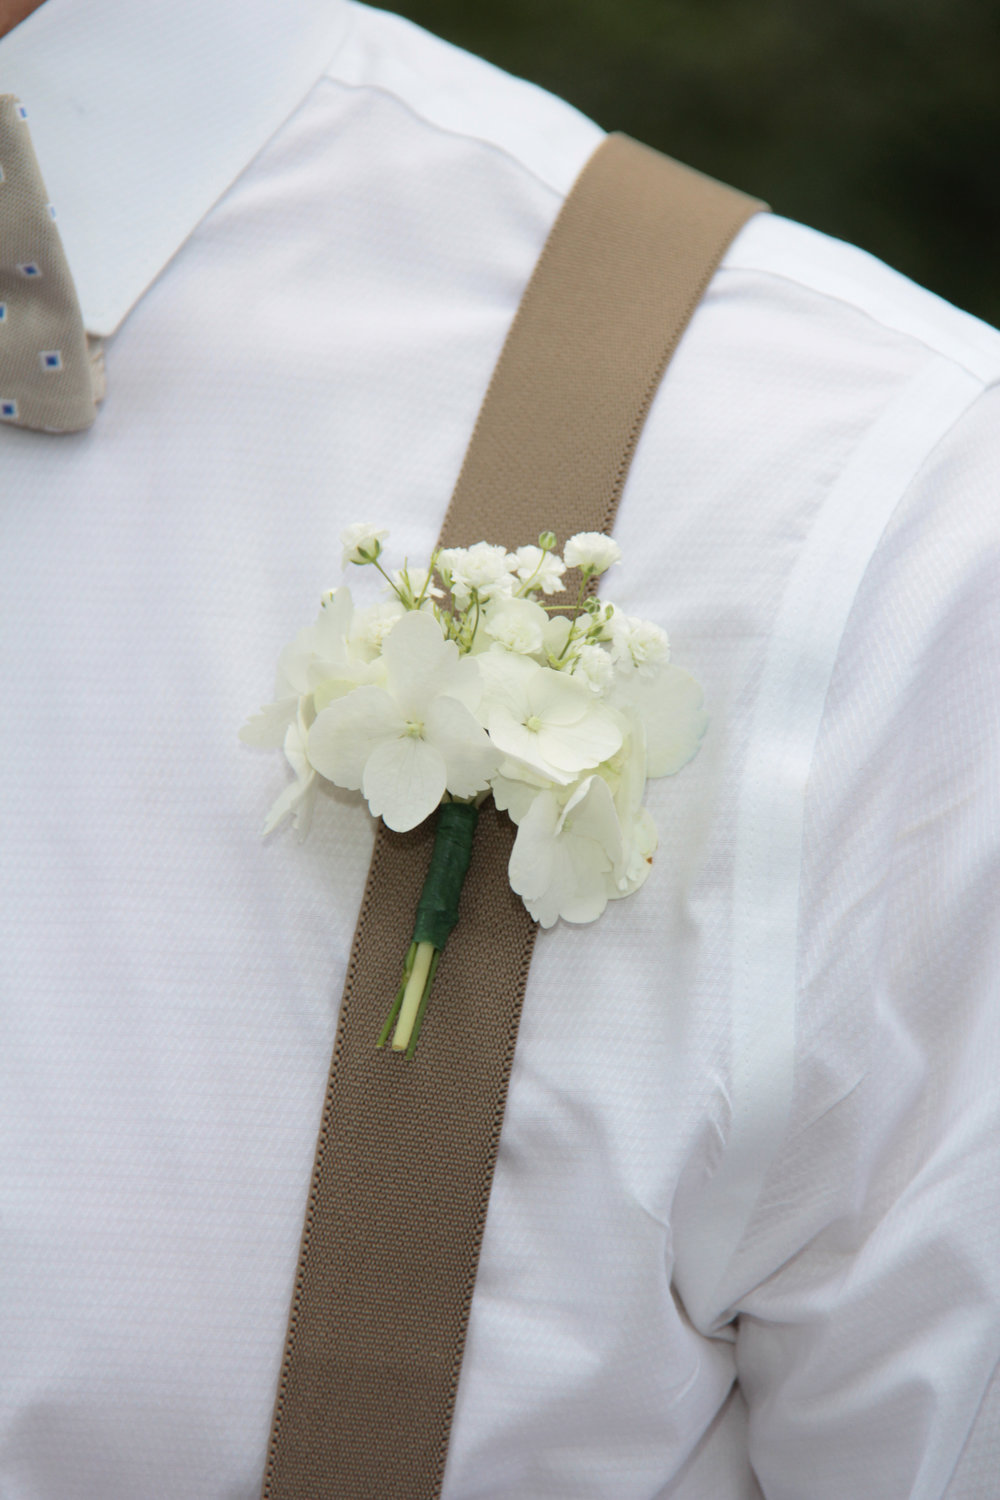 Savannah wedding, wedding packages, wedding flowers, destination wedding, groom, button hole,